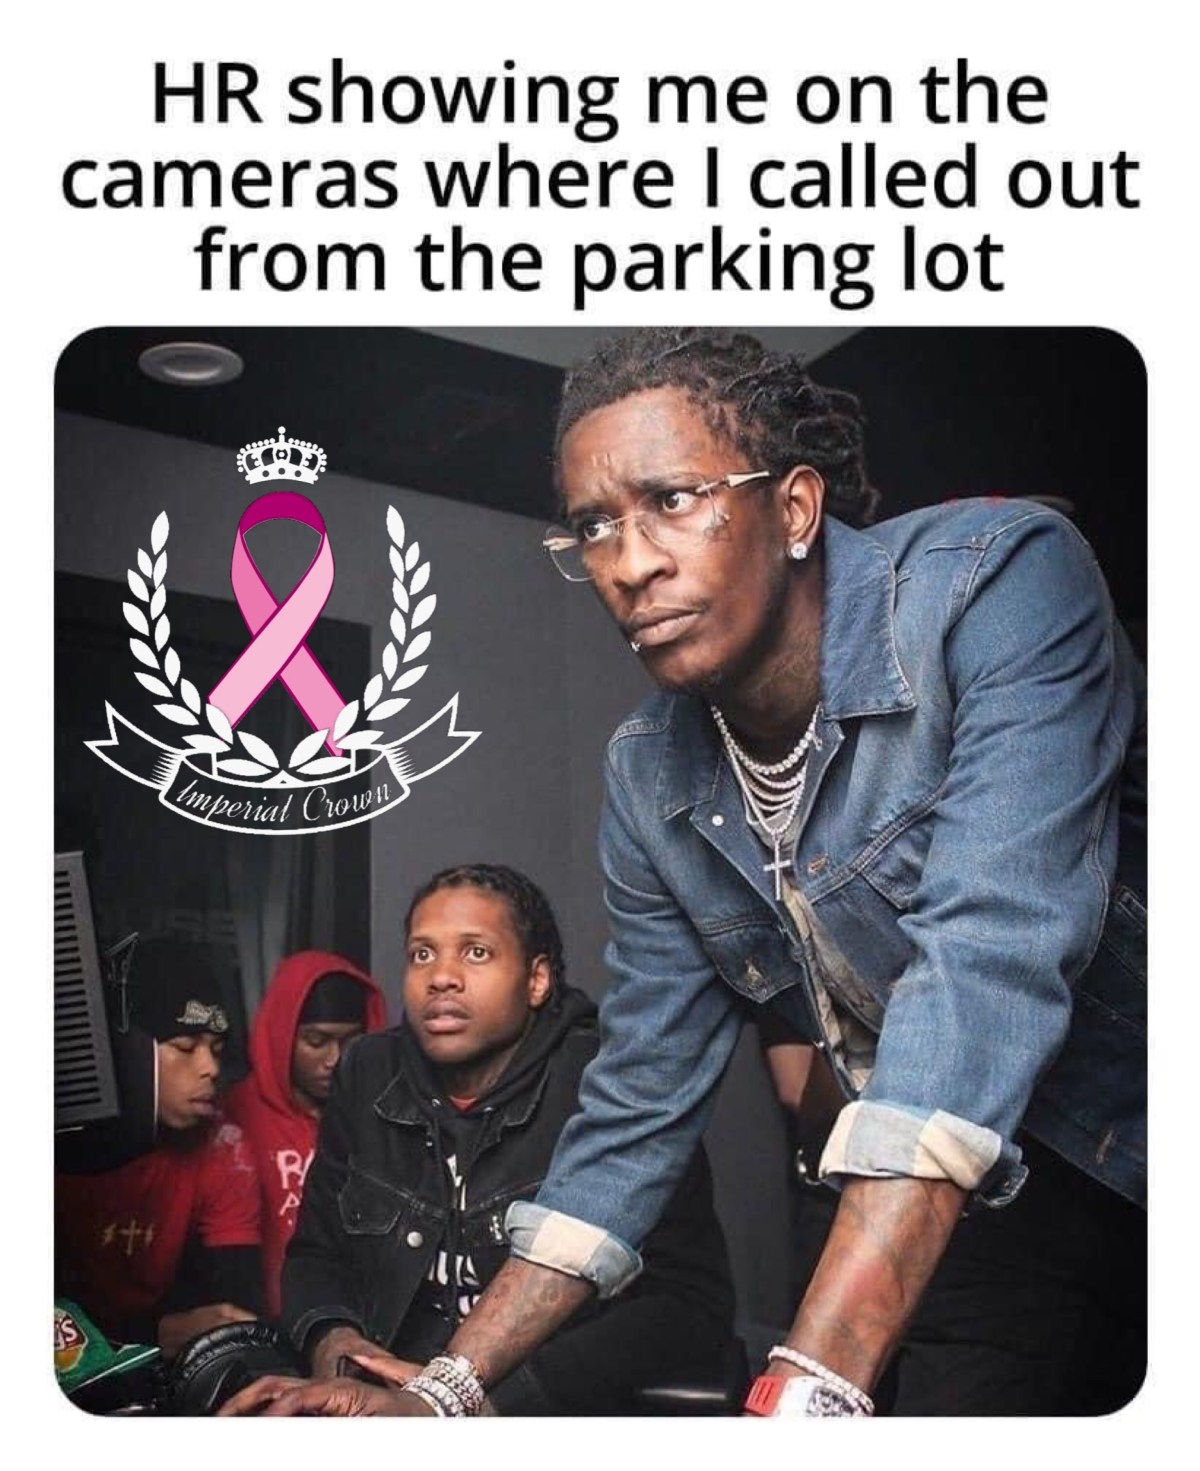 HR showing me on the cameras where I called out from the parking lot